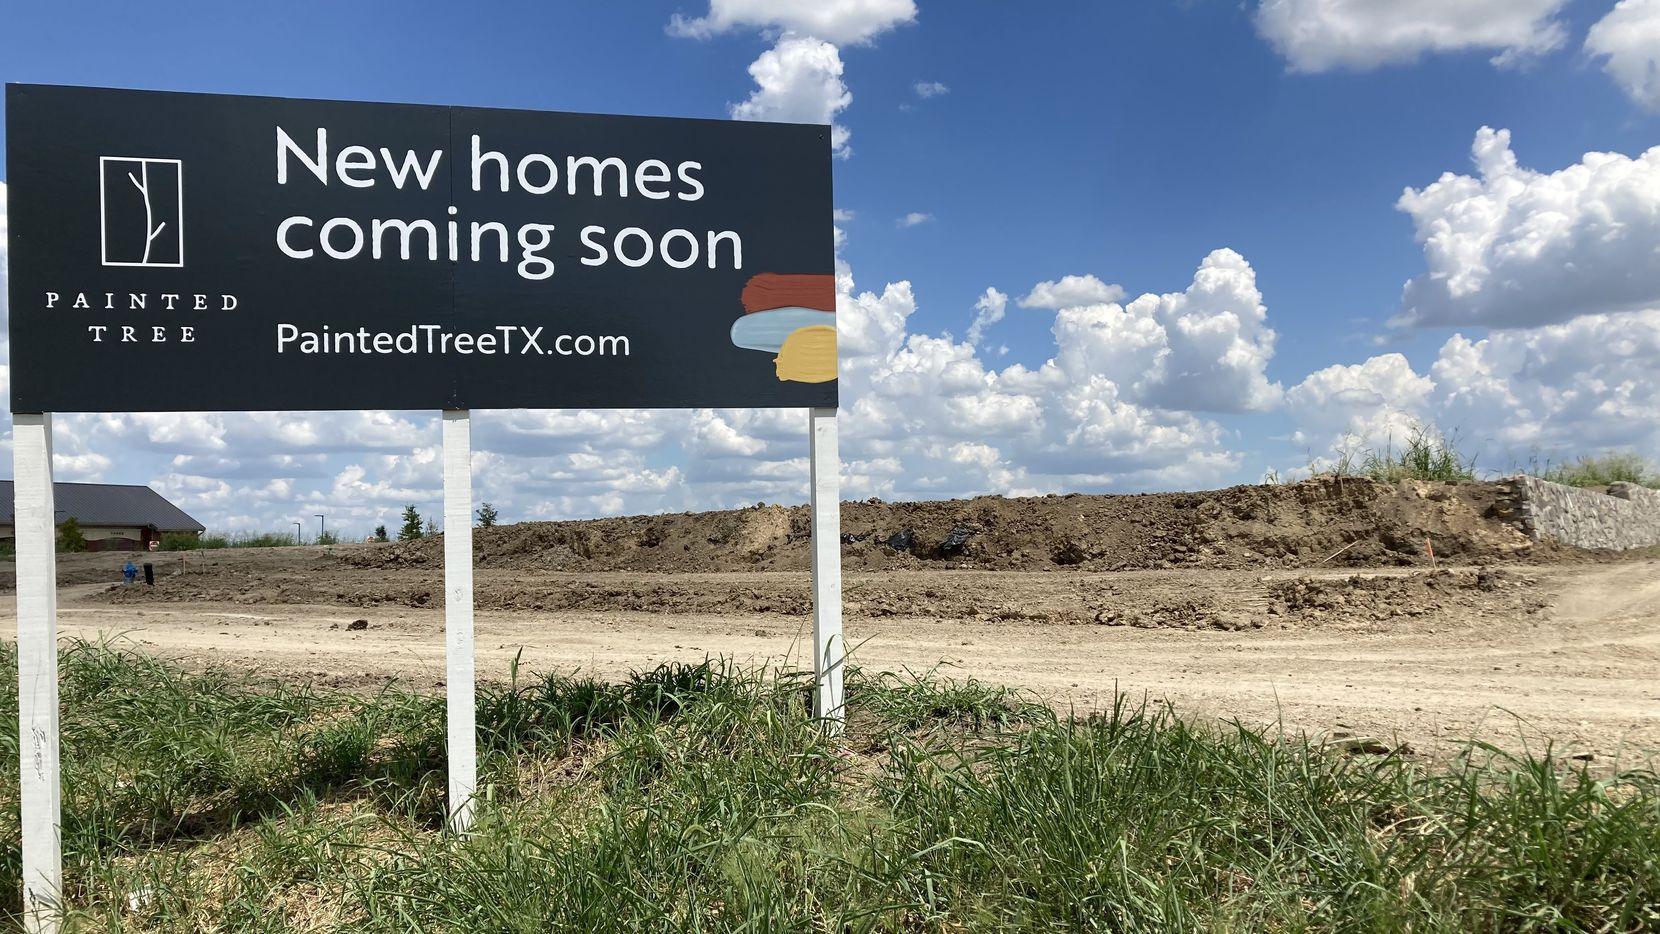 The Painted Tree community under construction on U.S. 380 in McKinney is one of the largest new residential projects being built in North Texas with more than 3,000 homes.